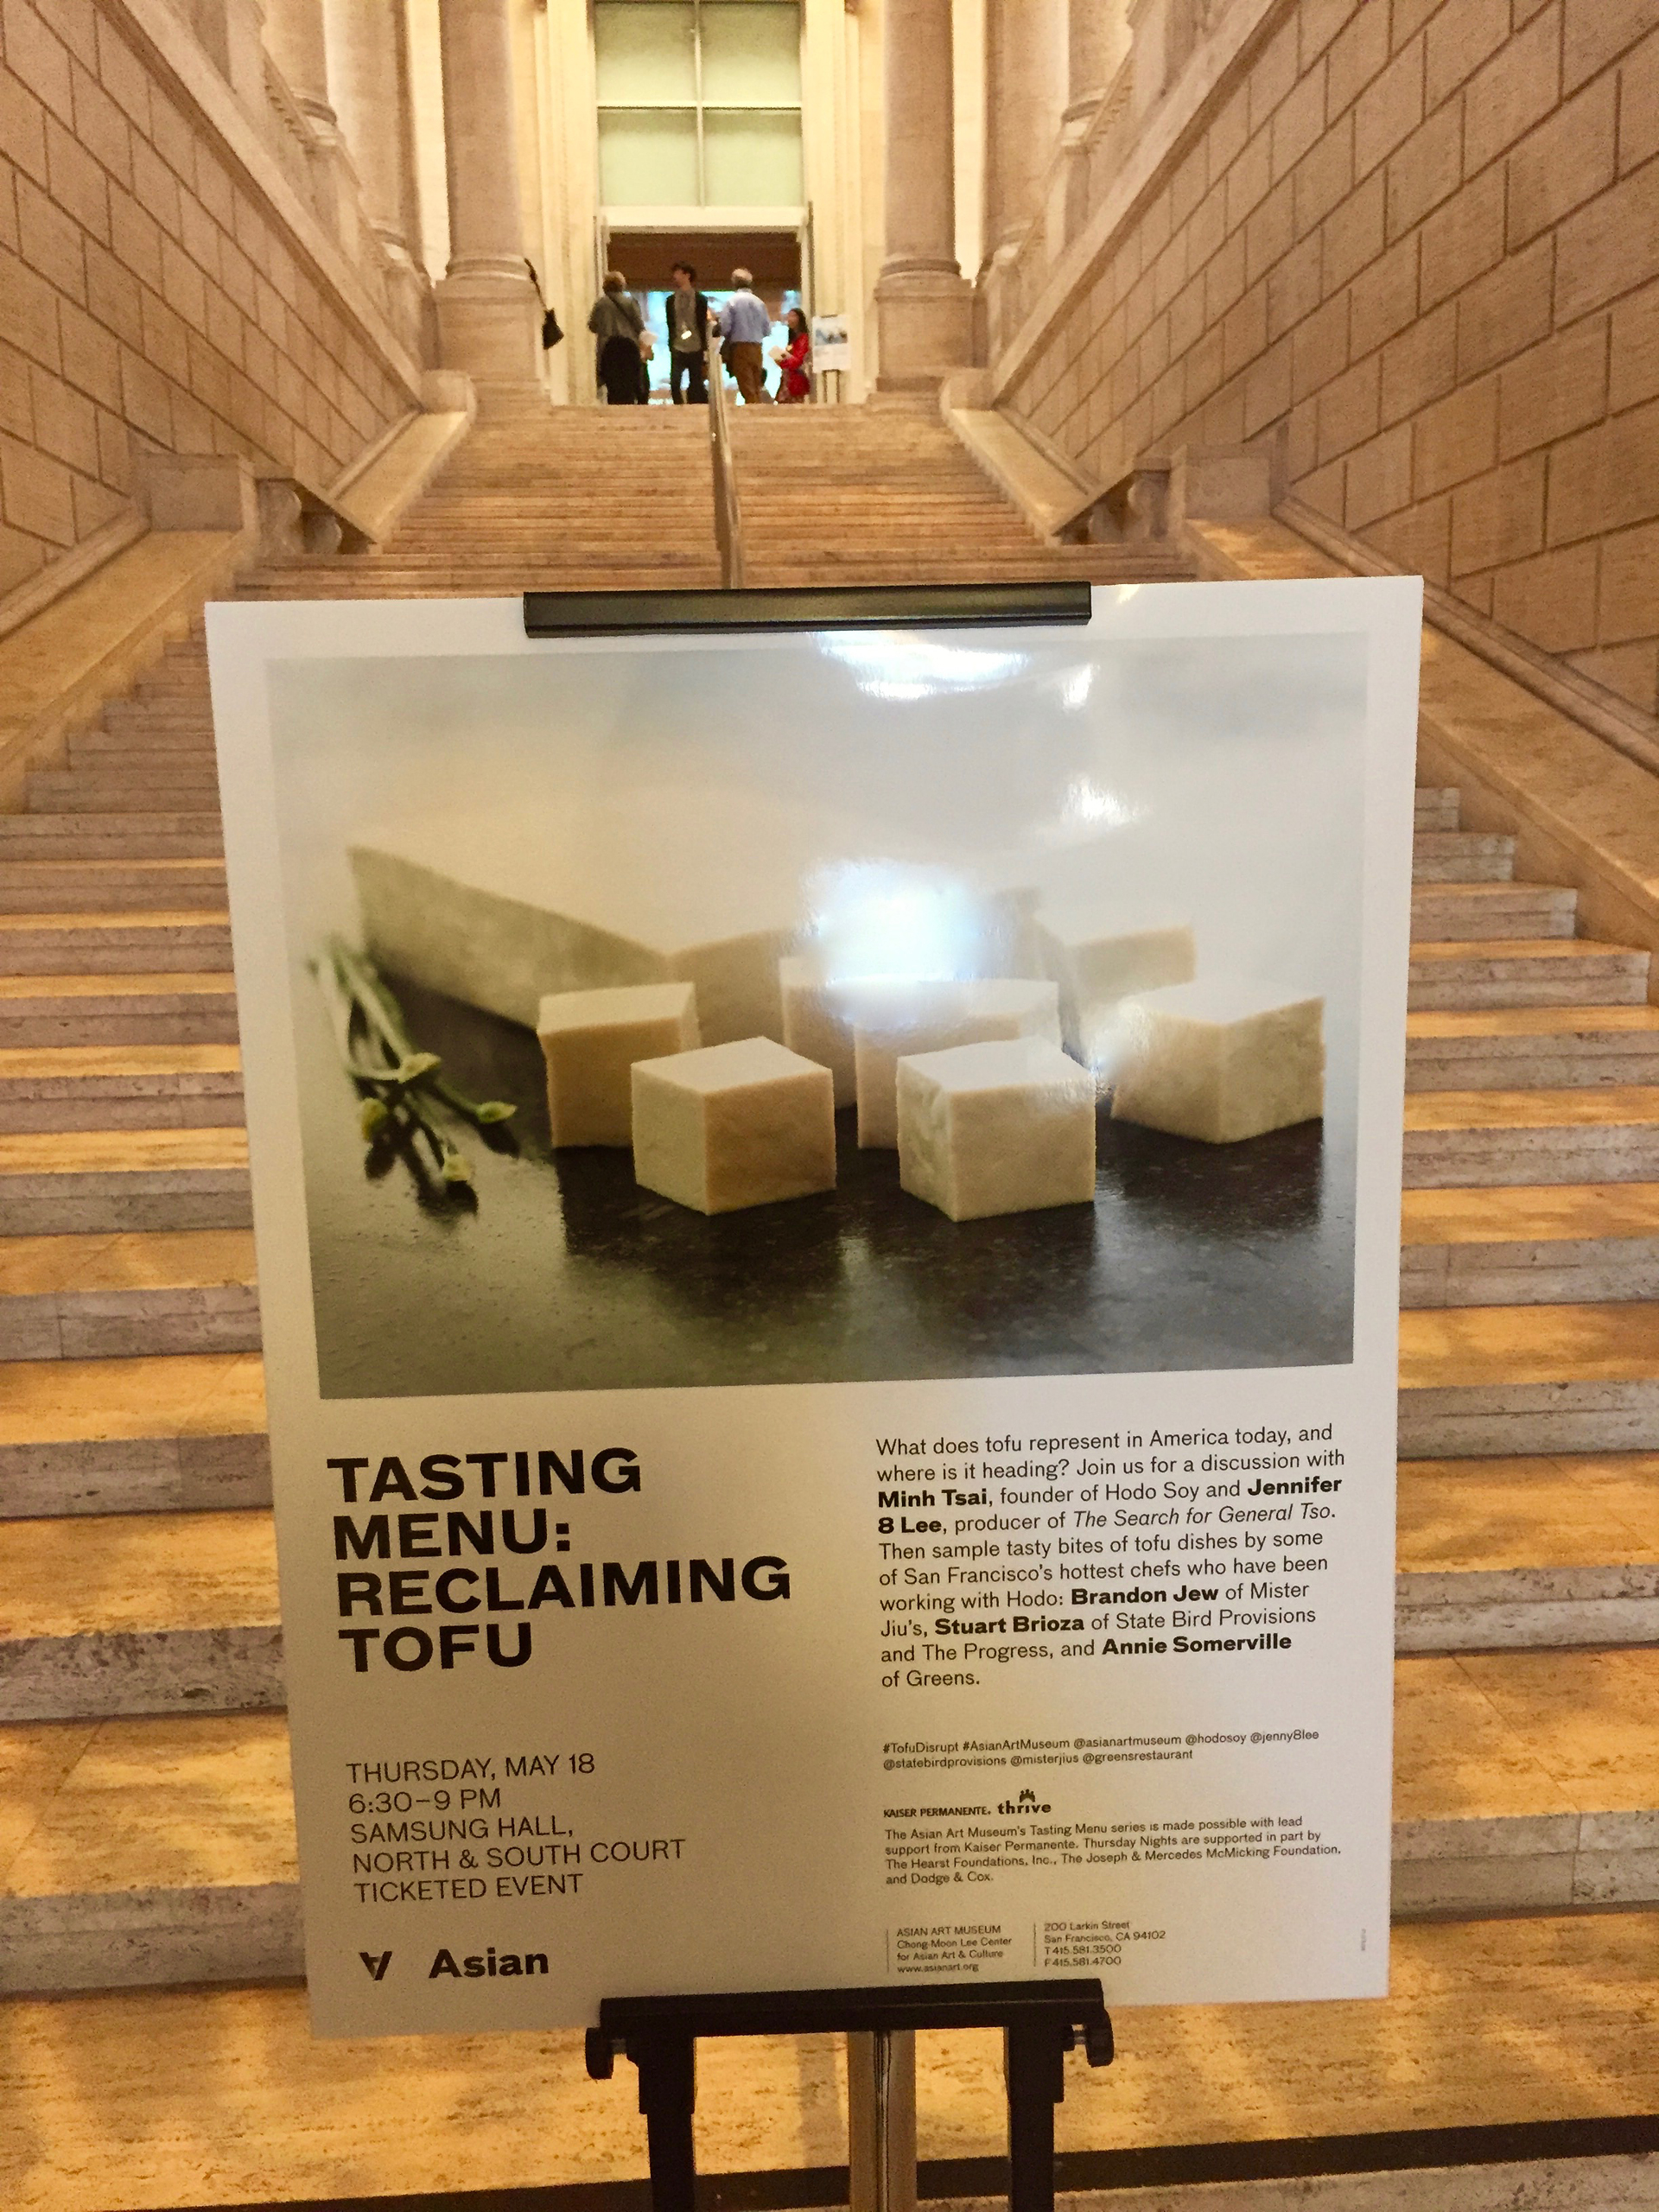 The San Francisco Asian Art Museum hosts periodic Tasting Menu programs, inviting patrons to make the connection between food and art.